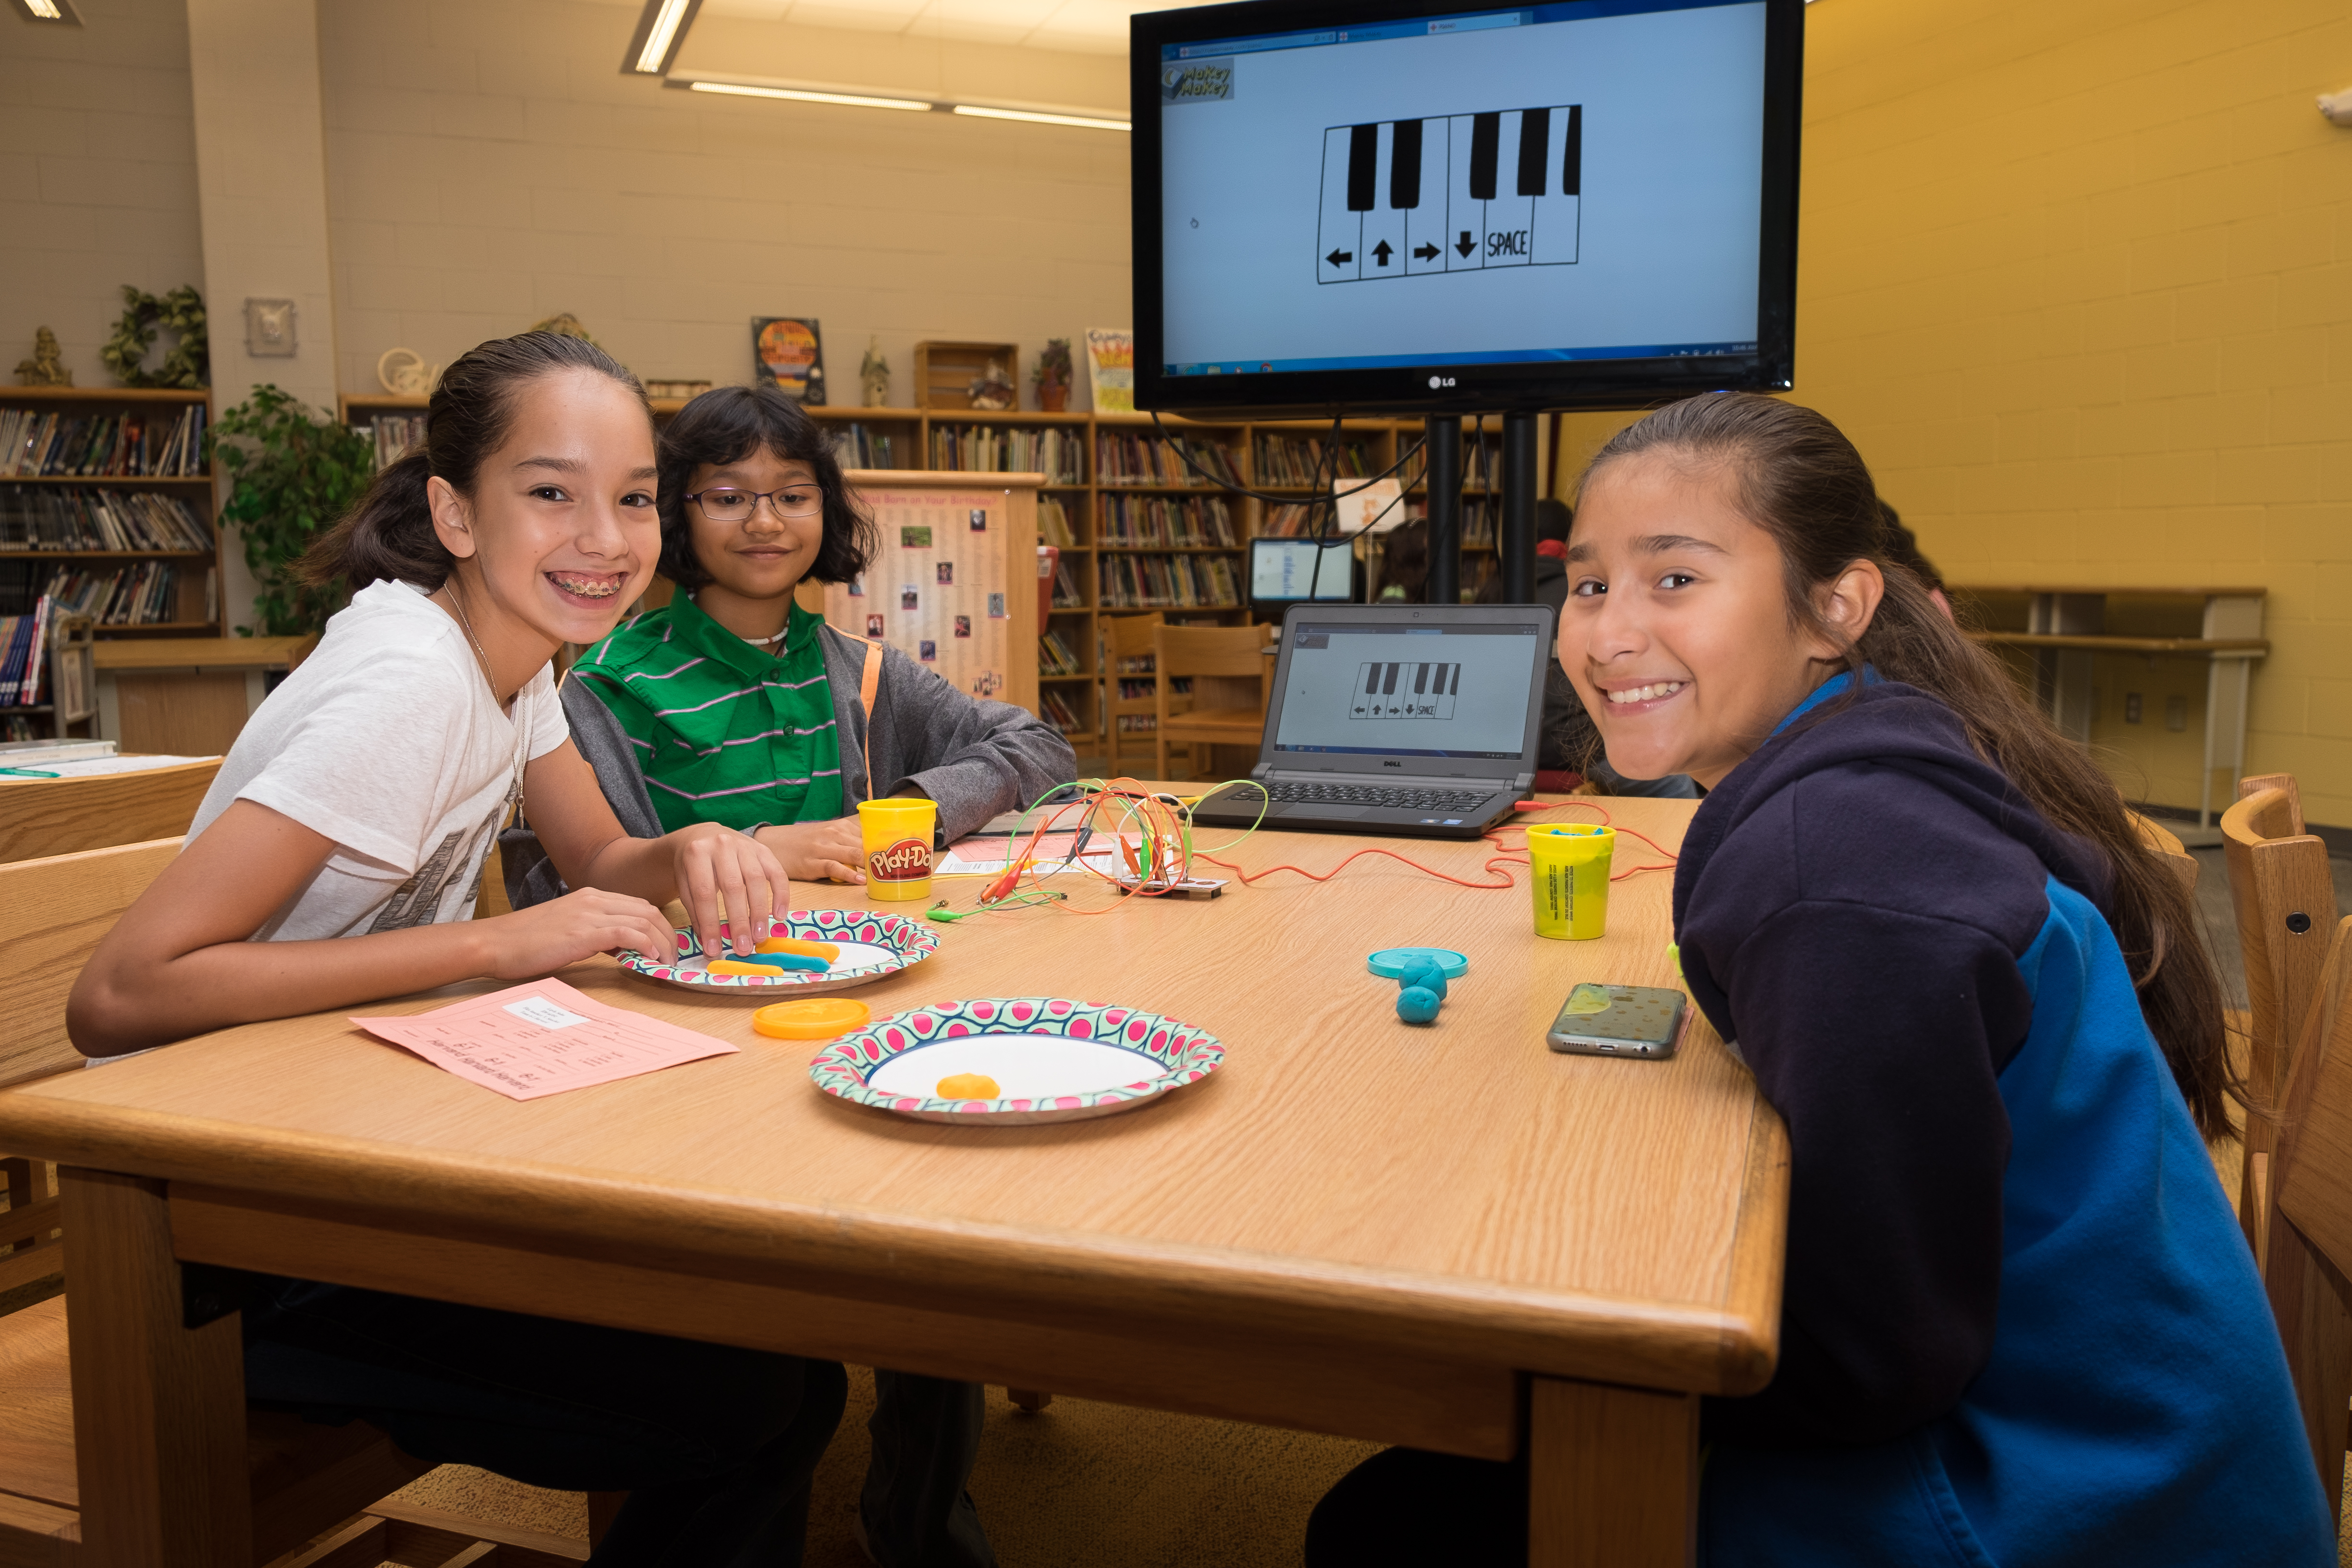 Memorial Middle School celebrates 'Power Up at Your Library Day' with STEM activities